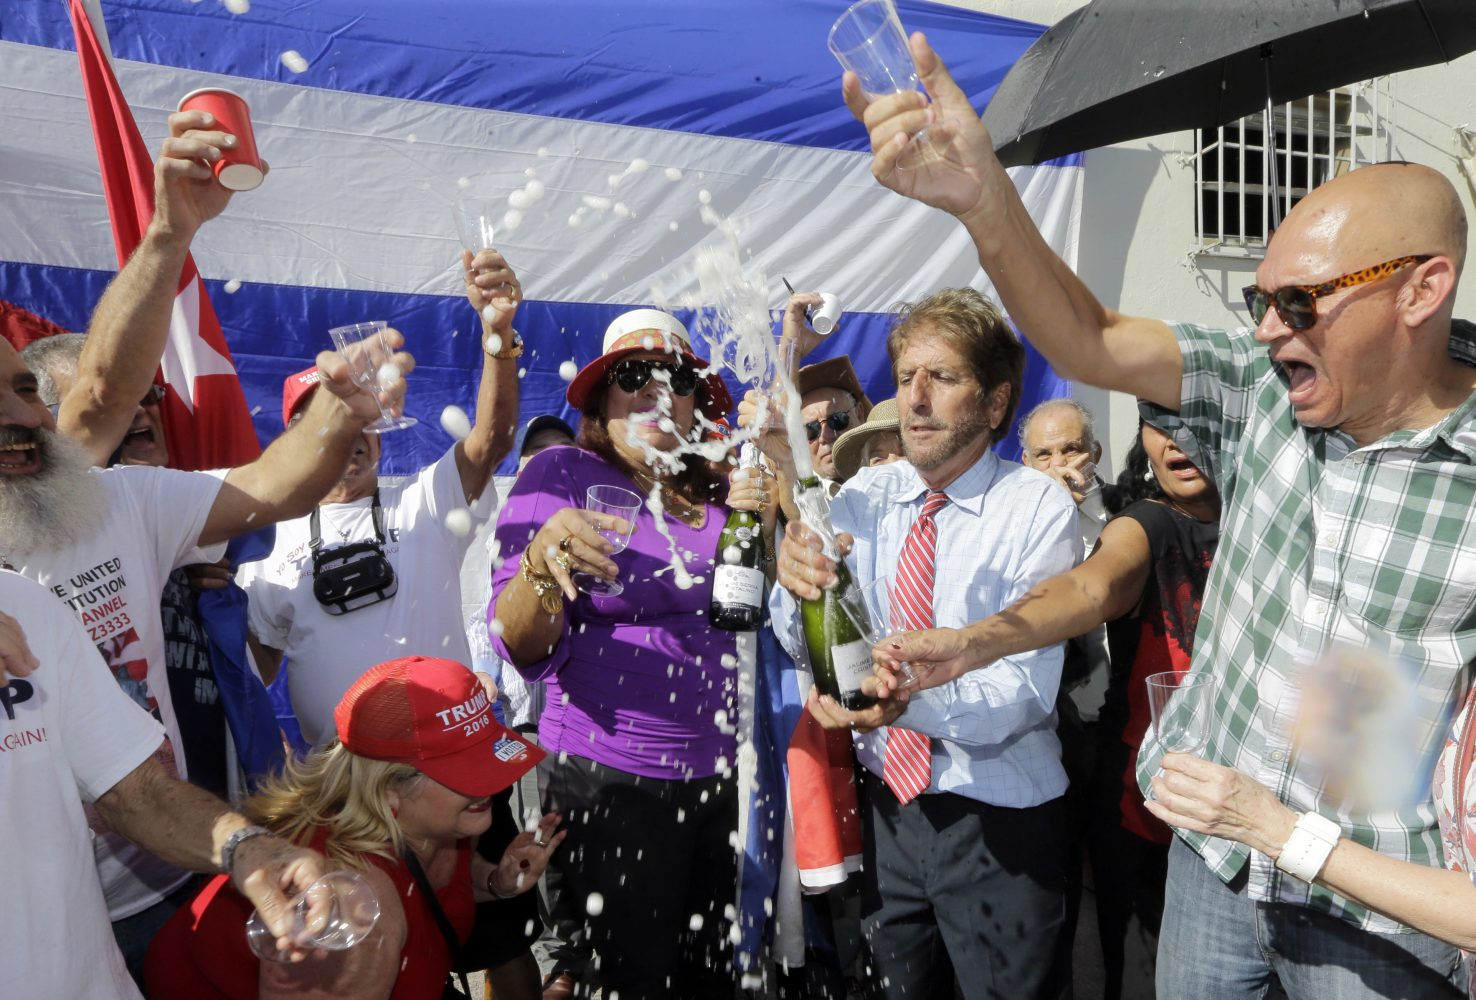 Cuban-American Miguel Saavedra pops a bottle of champagne as they celebrate Friday, Jan. 20, 2017, in the Little Havana area in Miami, before President-elect Donald Trump is sworn in as the 45th president of the United States. (AP Photo/Alan Diaz)